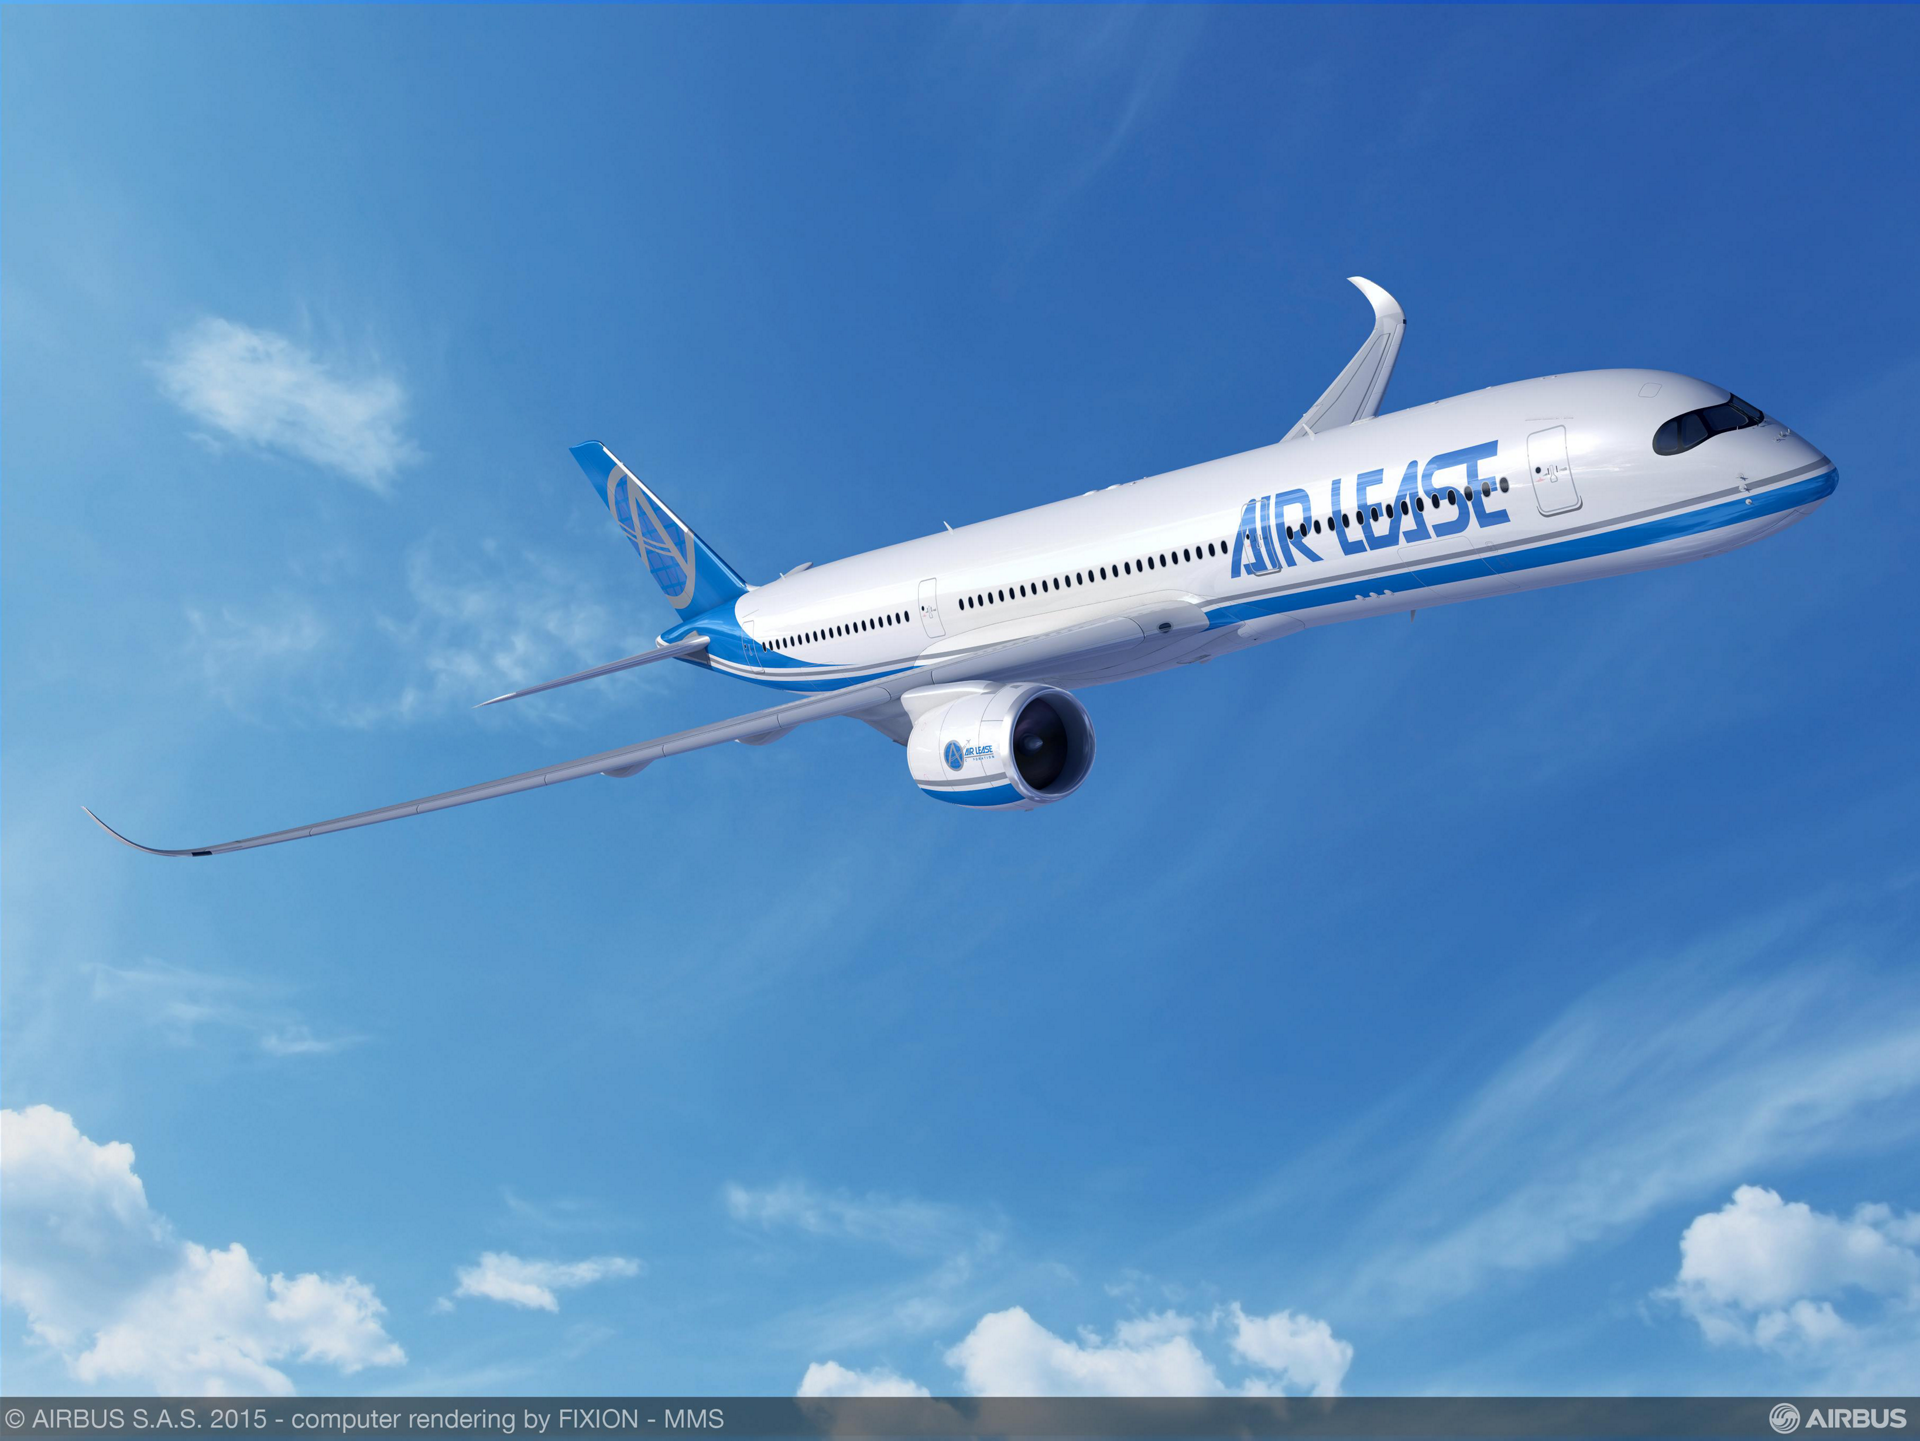 Today at the 51st International Paris Air Show, Air Lease Corporation (NYSE: AL), announced a firm order for additional Airbus widebody and single-aisle aircraft (1 A350-900, 1 A321ceo and 3 A320ceo*) to meet strong market demand for Airbus' modern, fuel-efficient aircraft.